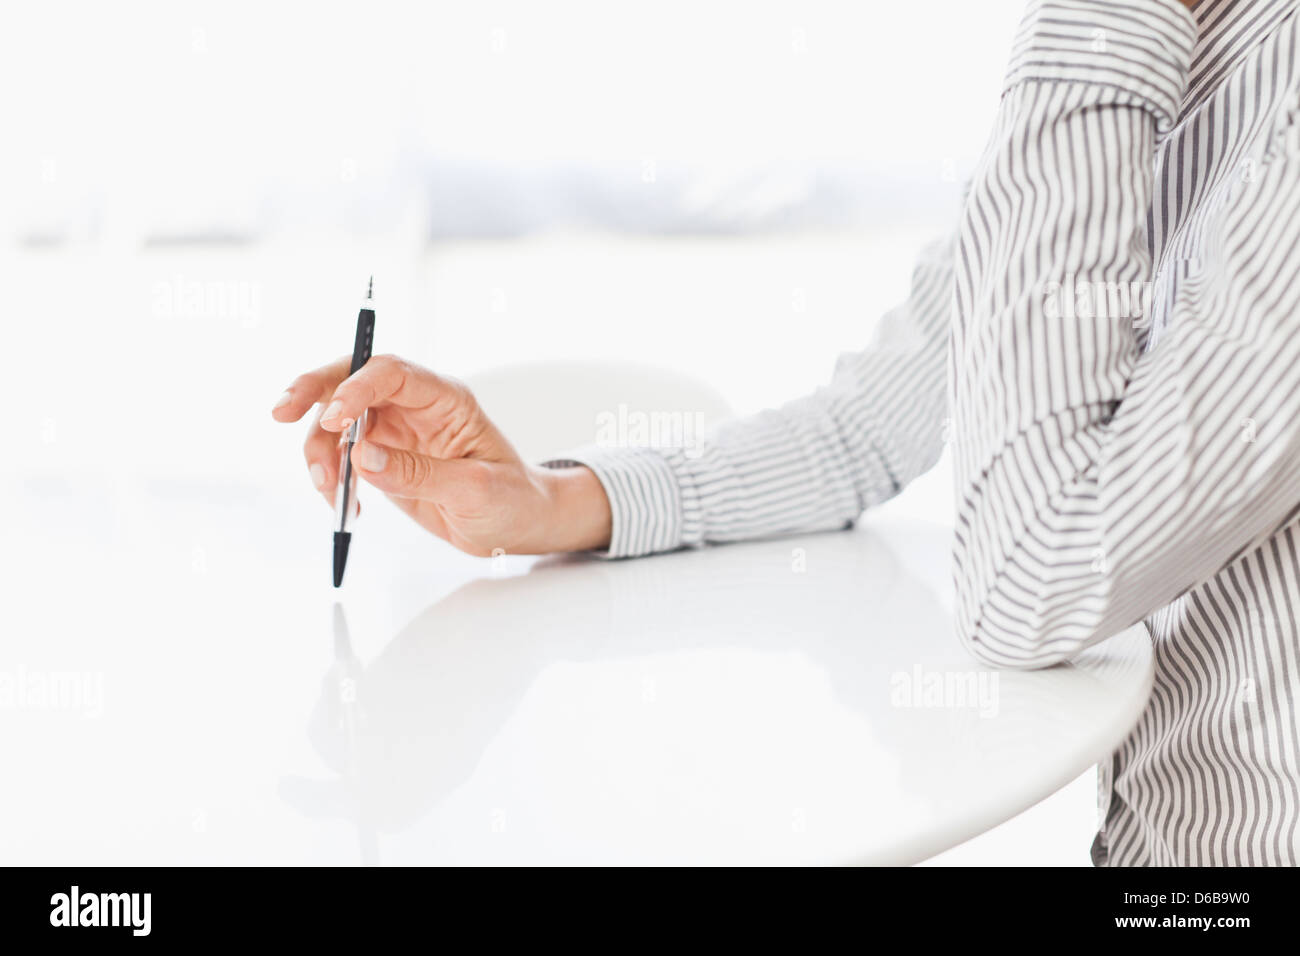 Businessman tapping pen on desk - Stock Image